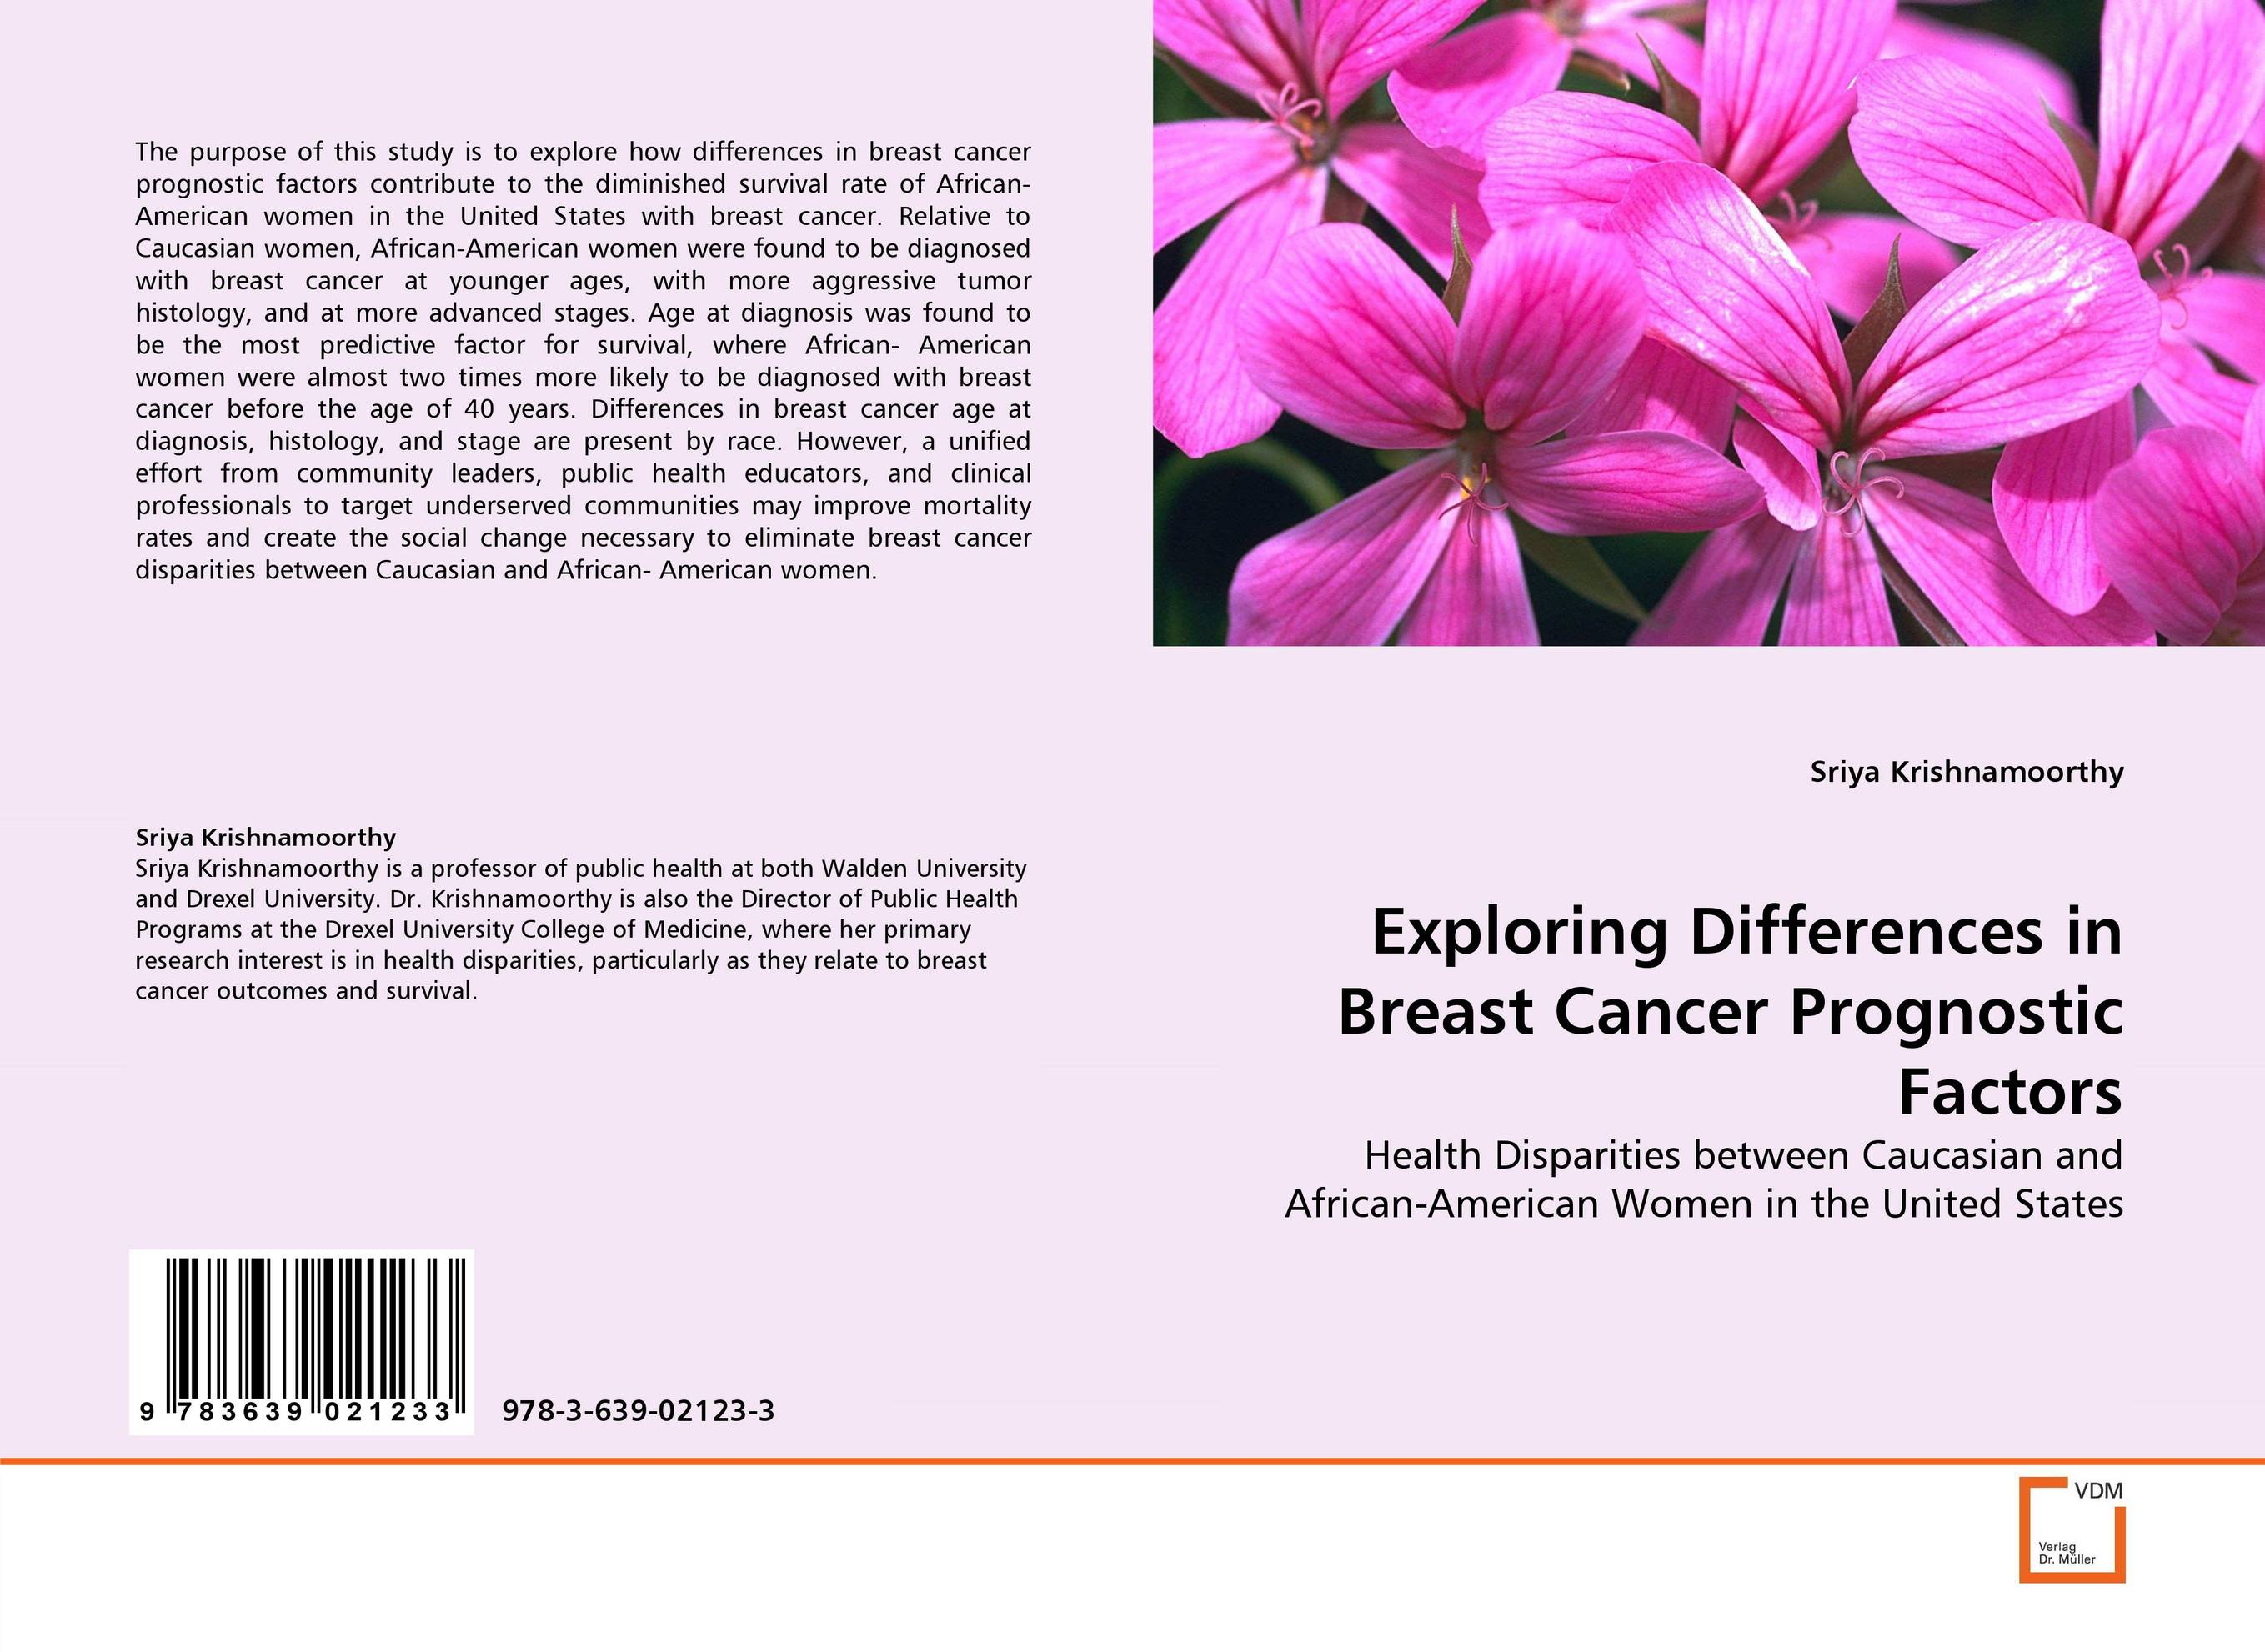 Exploring Differences in Breast Cancer Prognostic Factors cervical cancer in amhara region in ethiopia